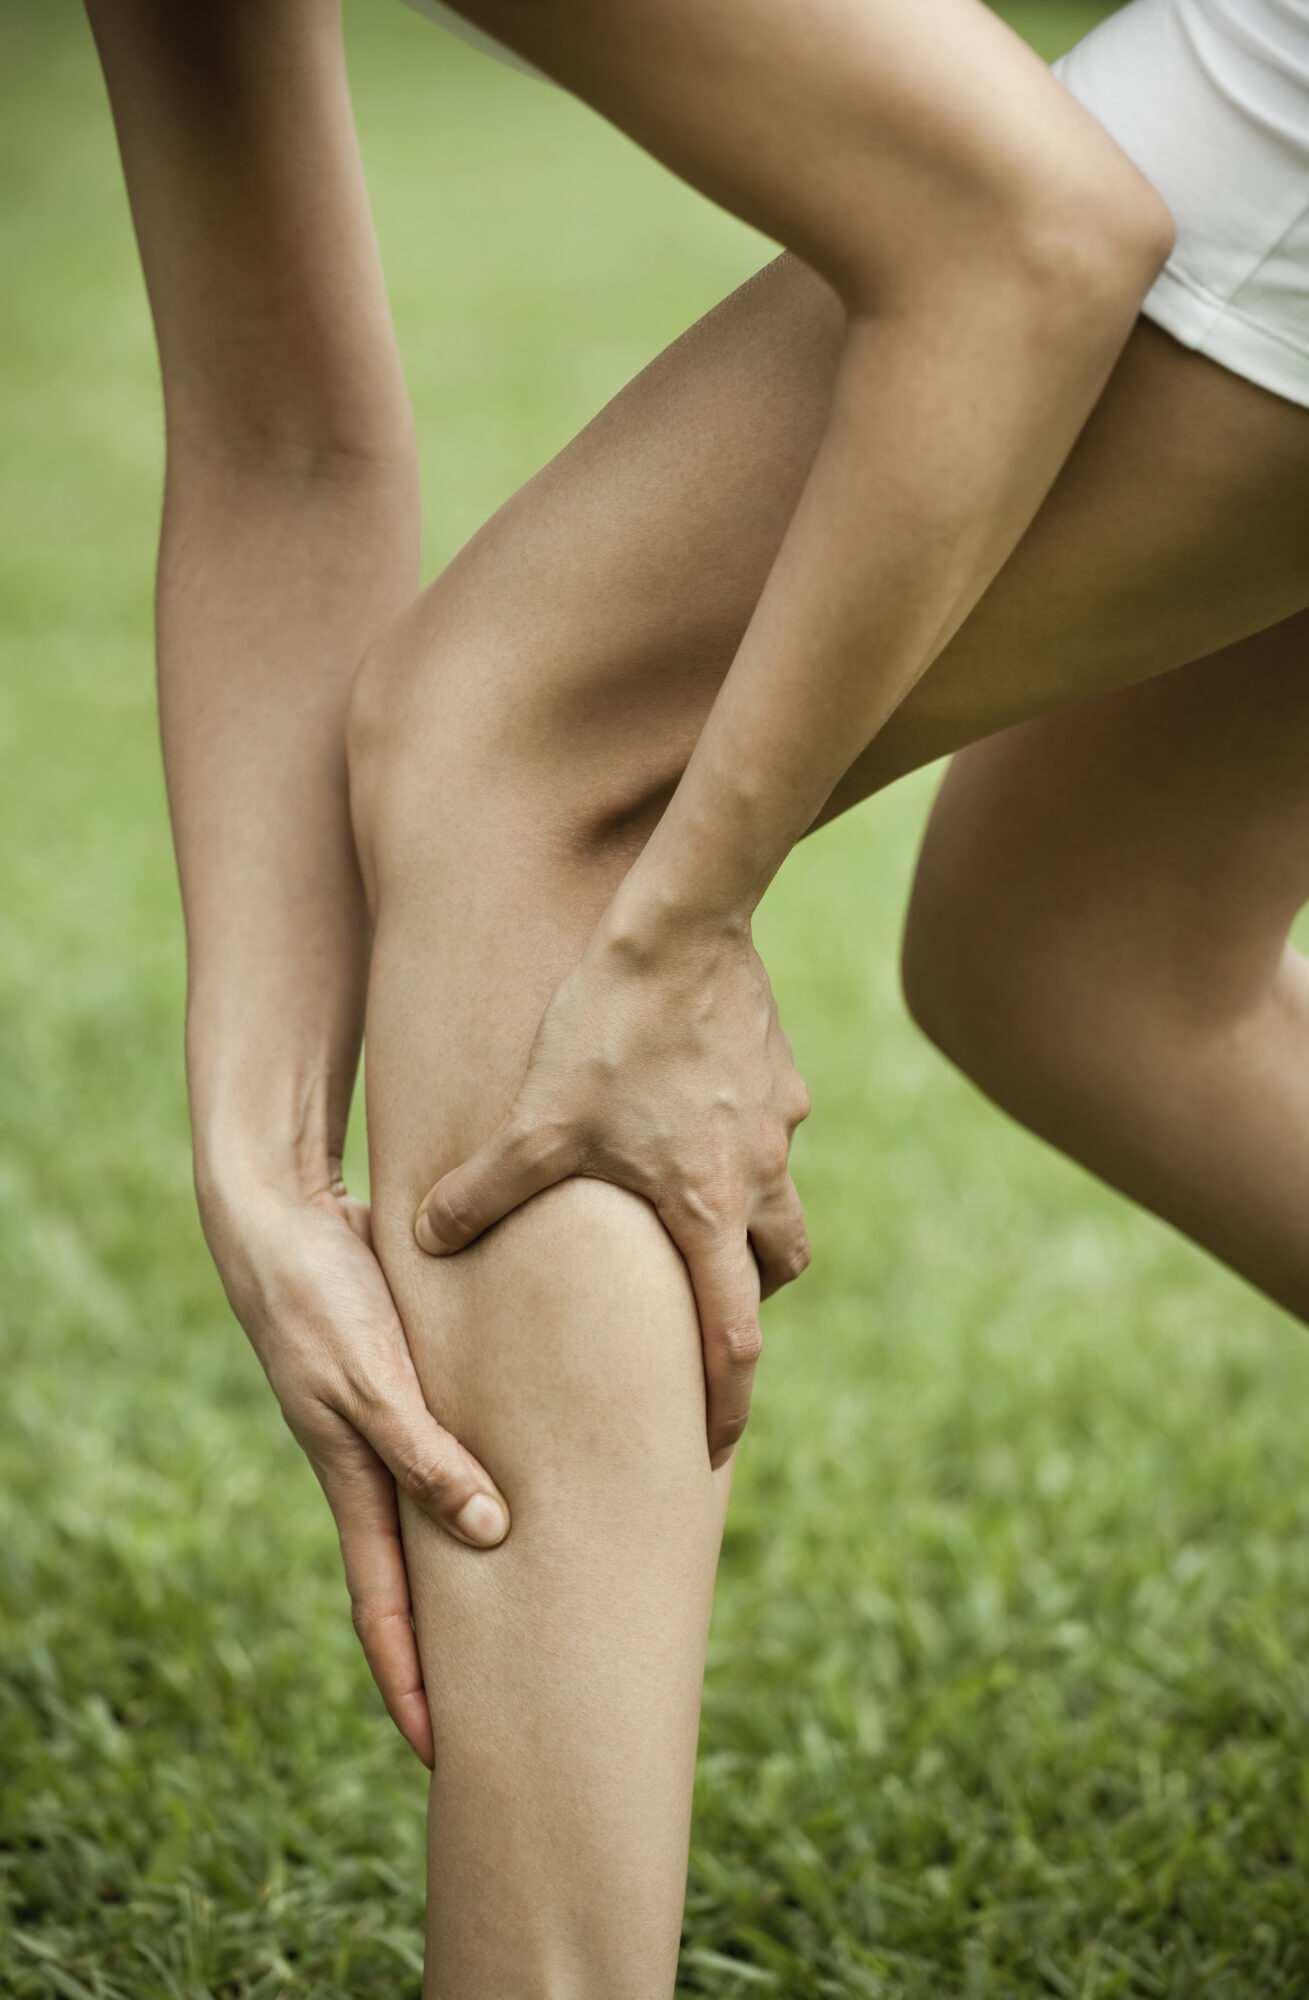 Regularly suffer from leg cramps? Here's what to do